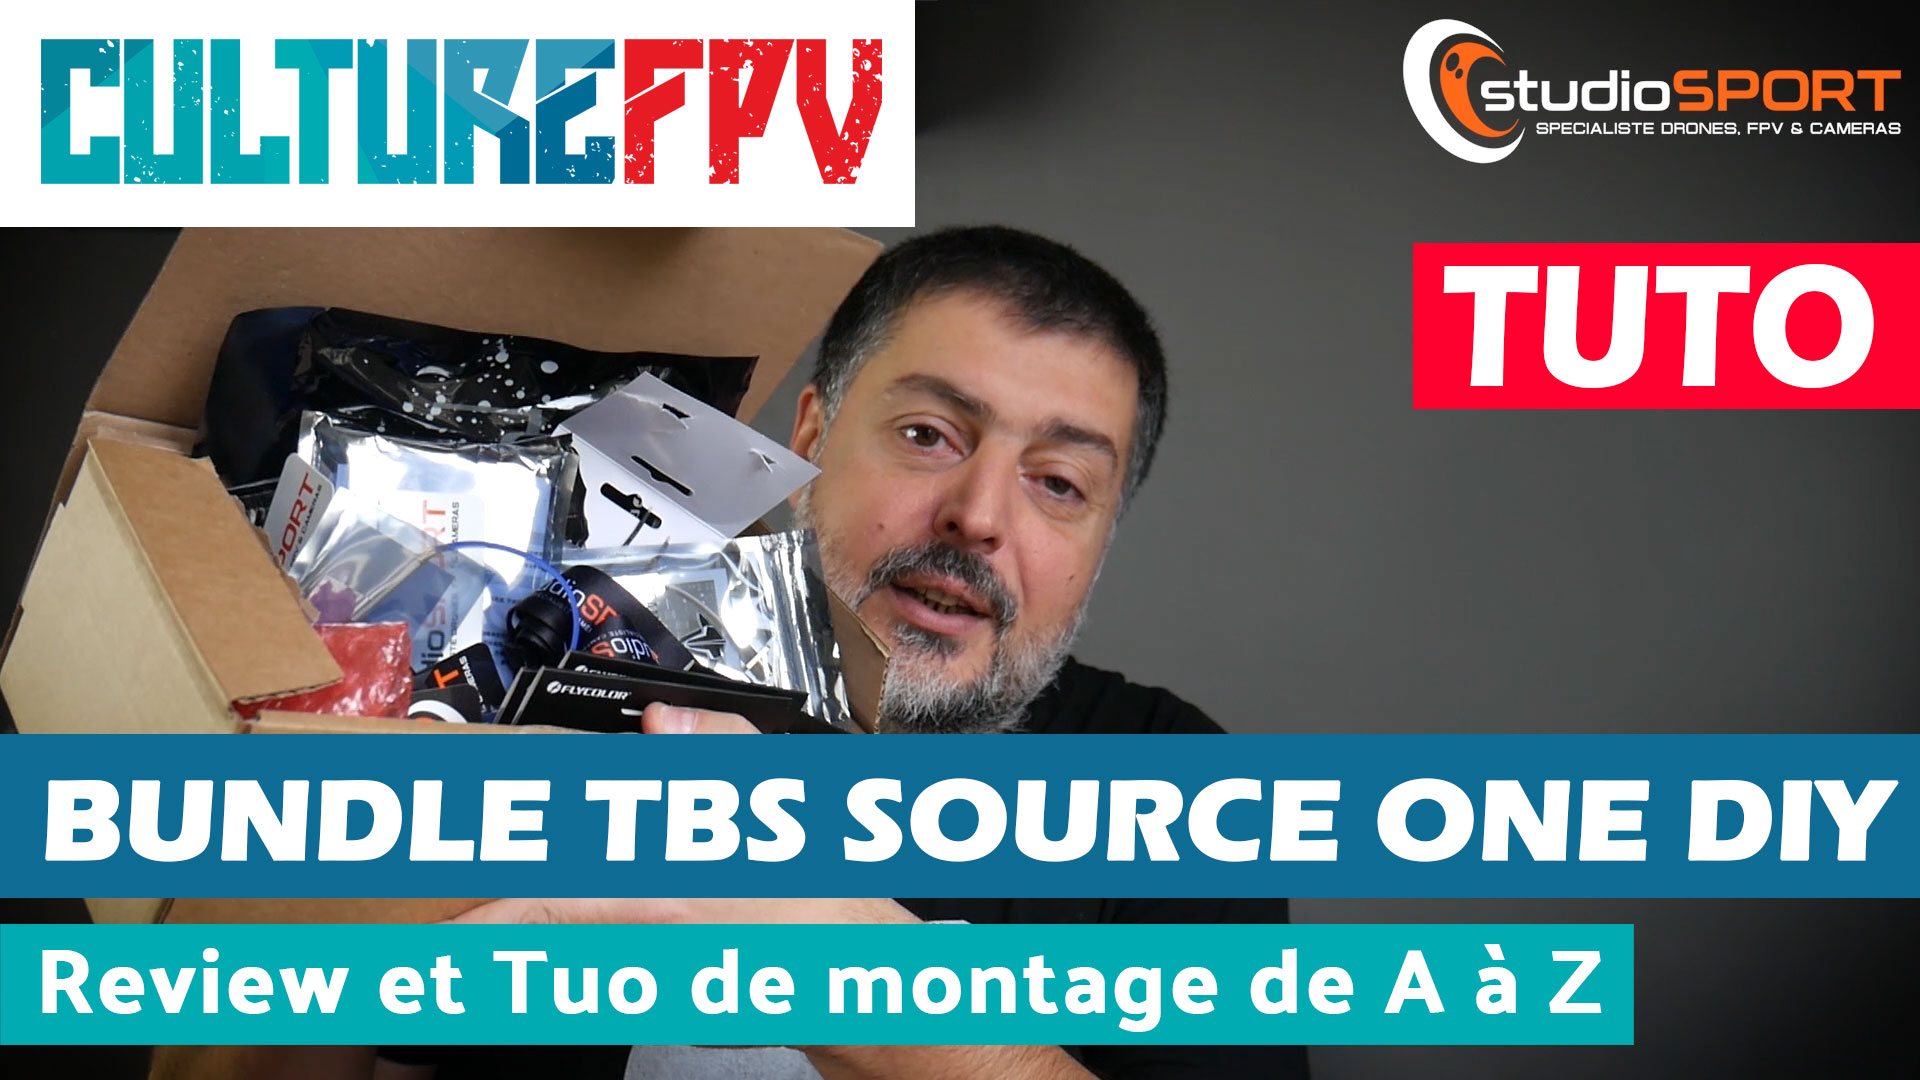 Bundle TBS Source One DIY